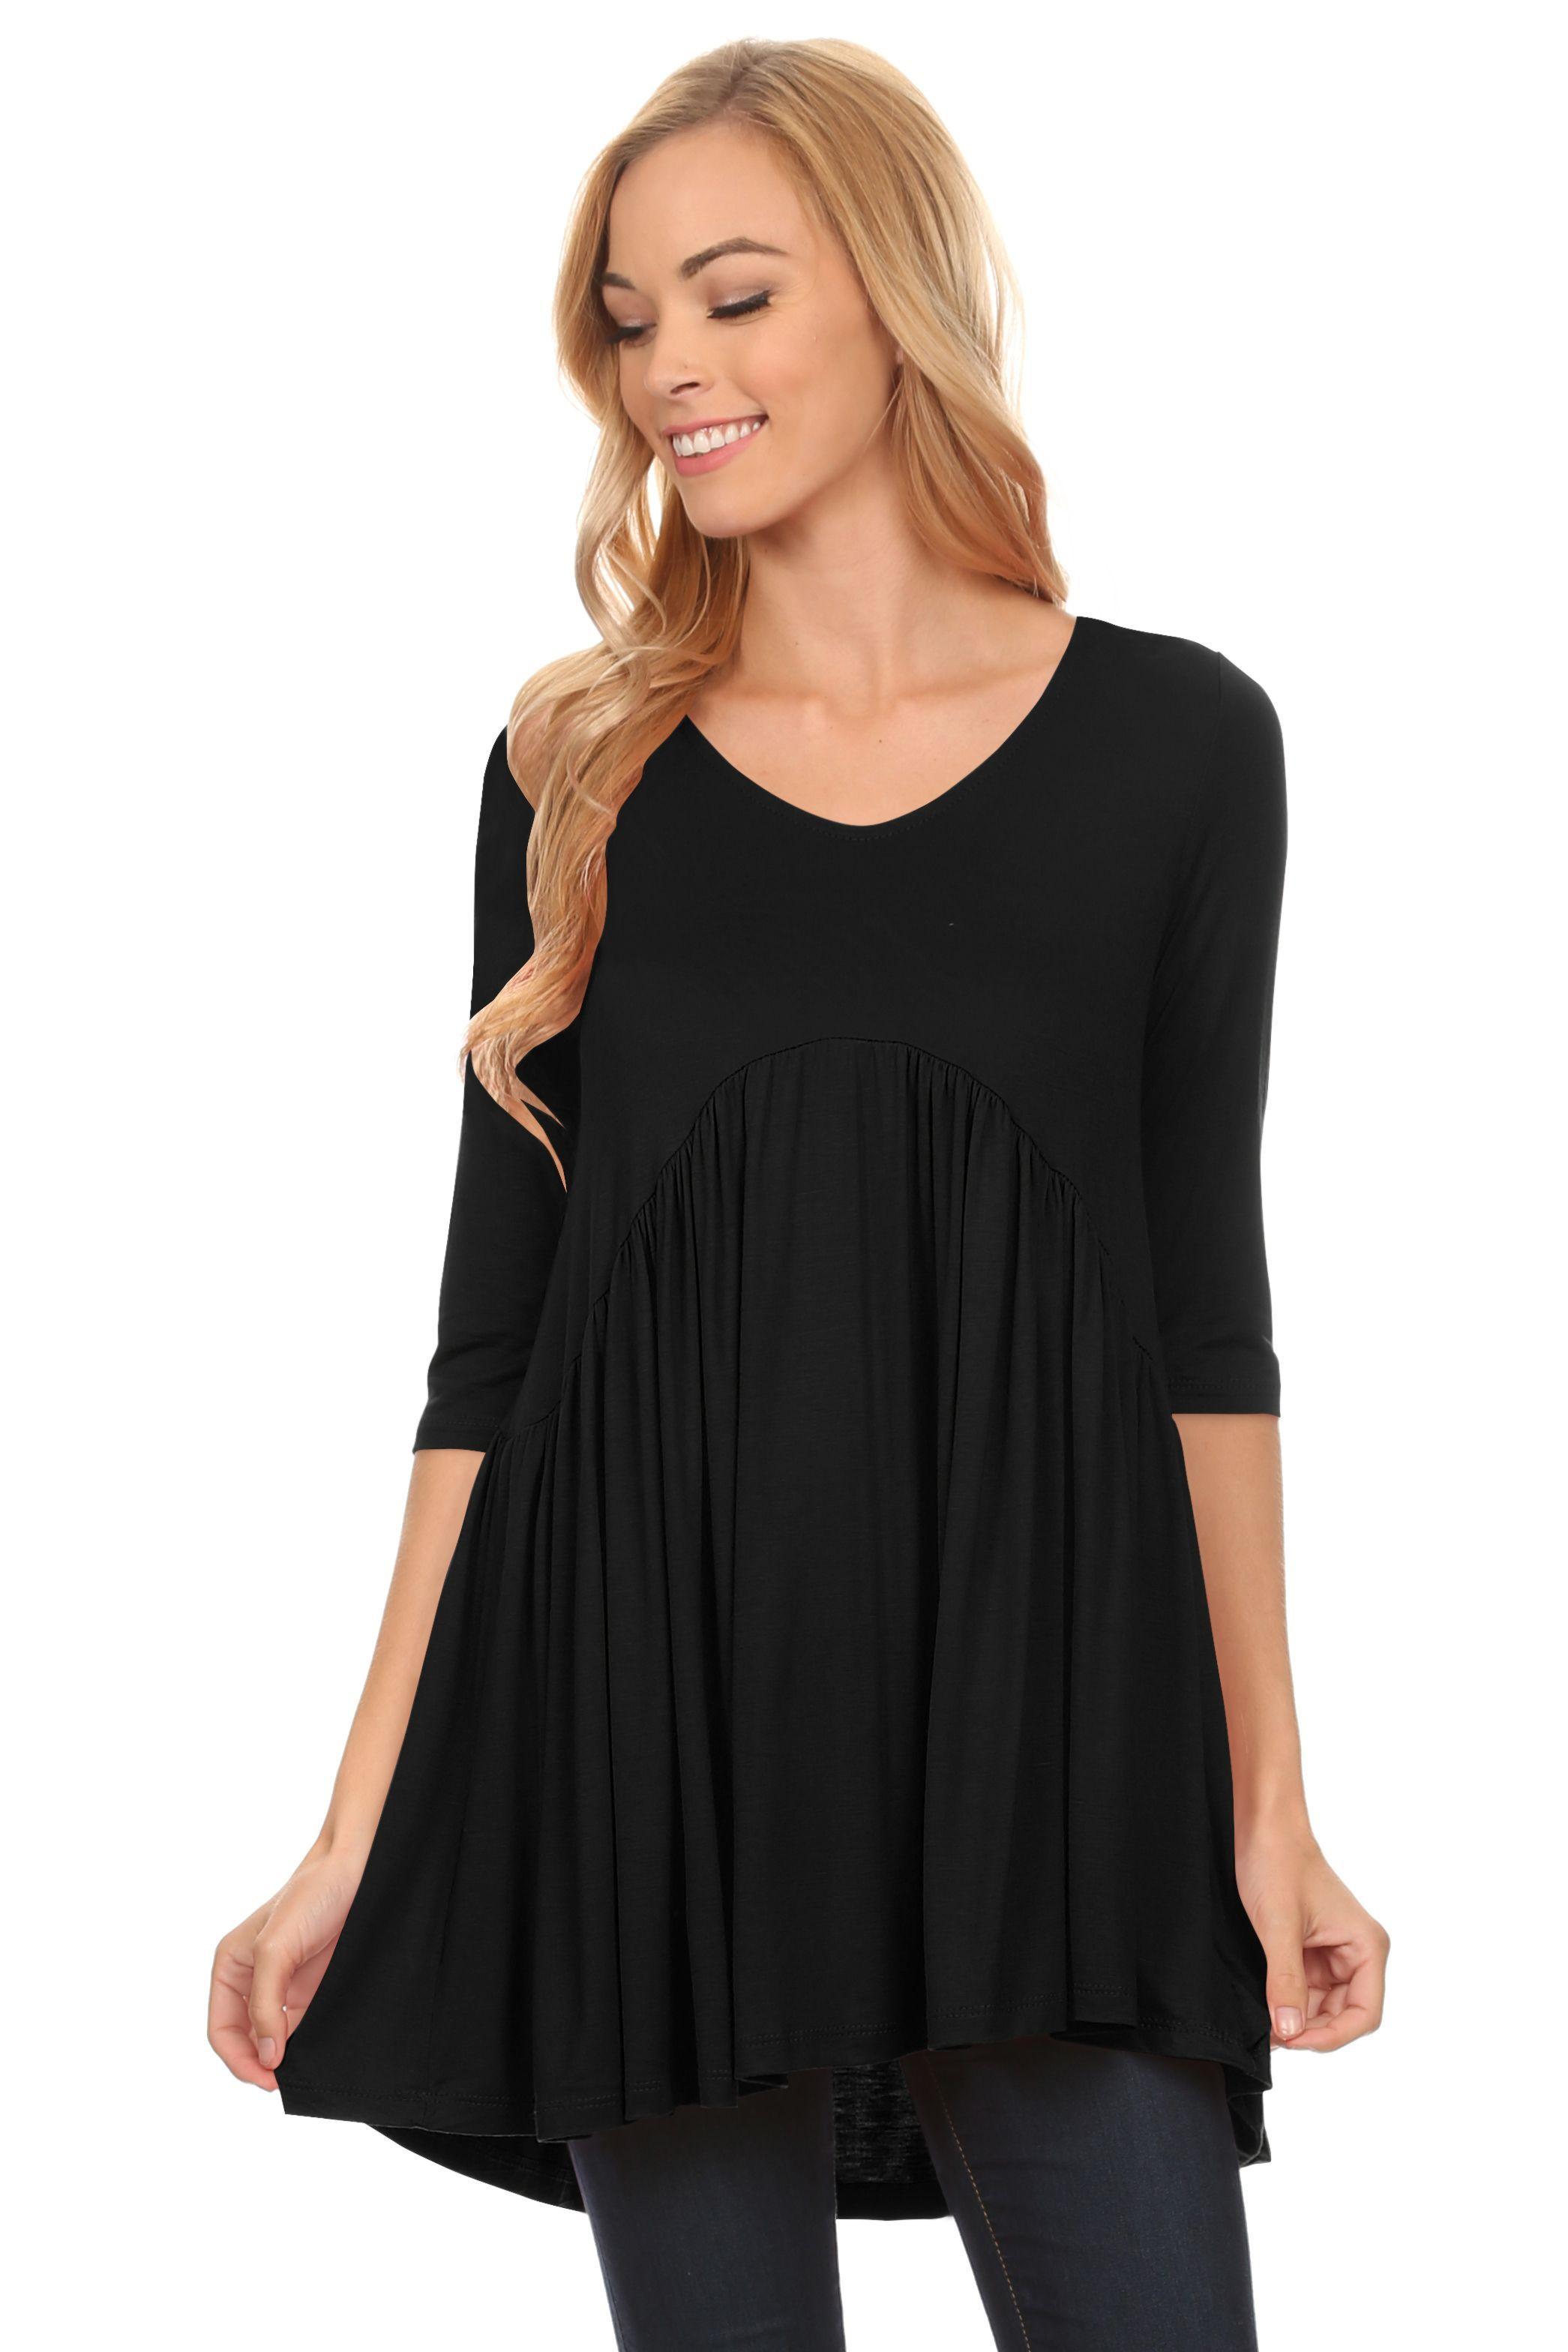 29f7d73e1c5 COMFORT - These Mini Dress Tunics for Women is composed of 95% Rayon, 5%  Spandex thereby forming a high quality and comfortable top which you will  love and ...